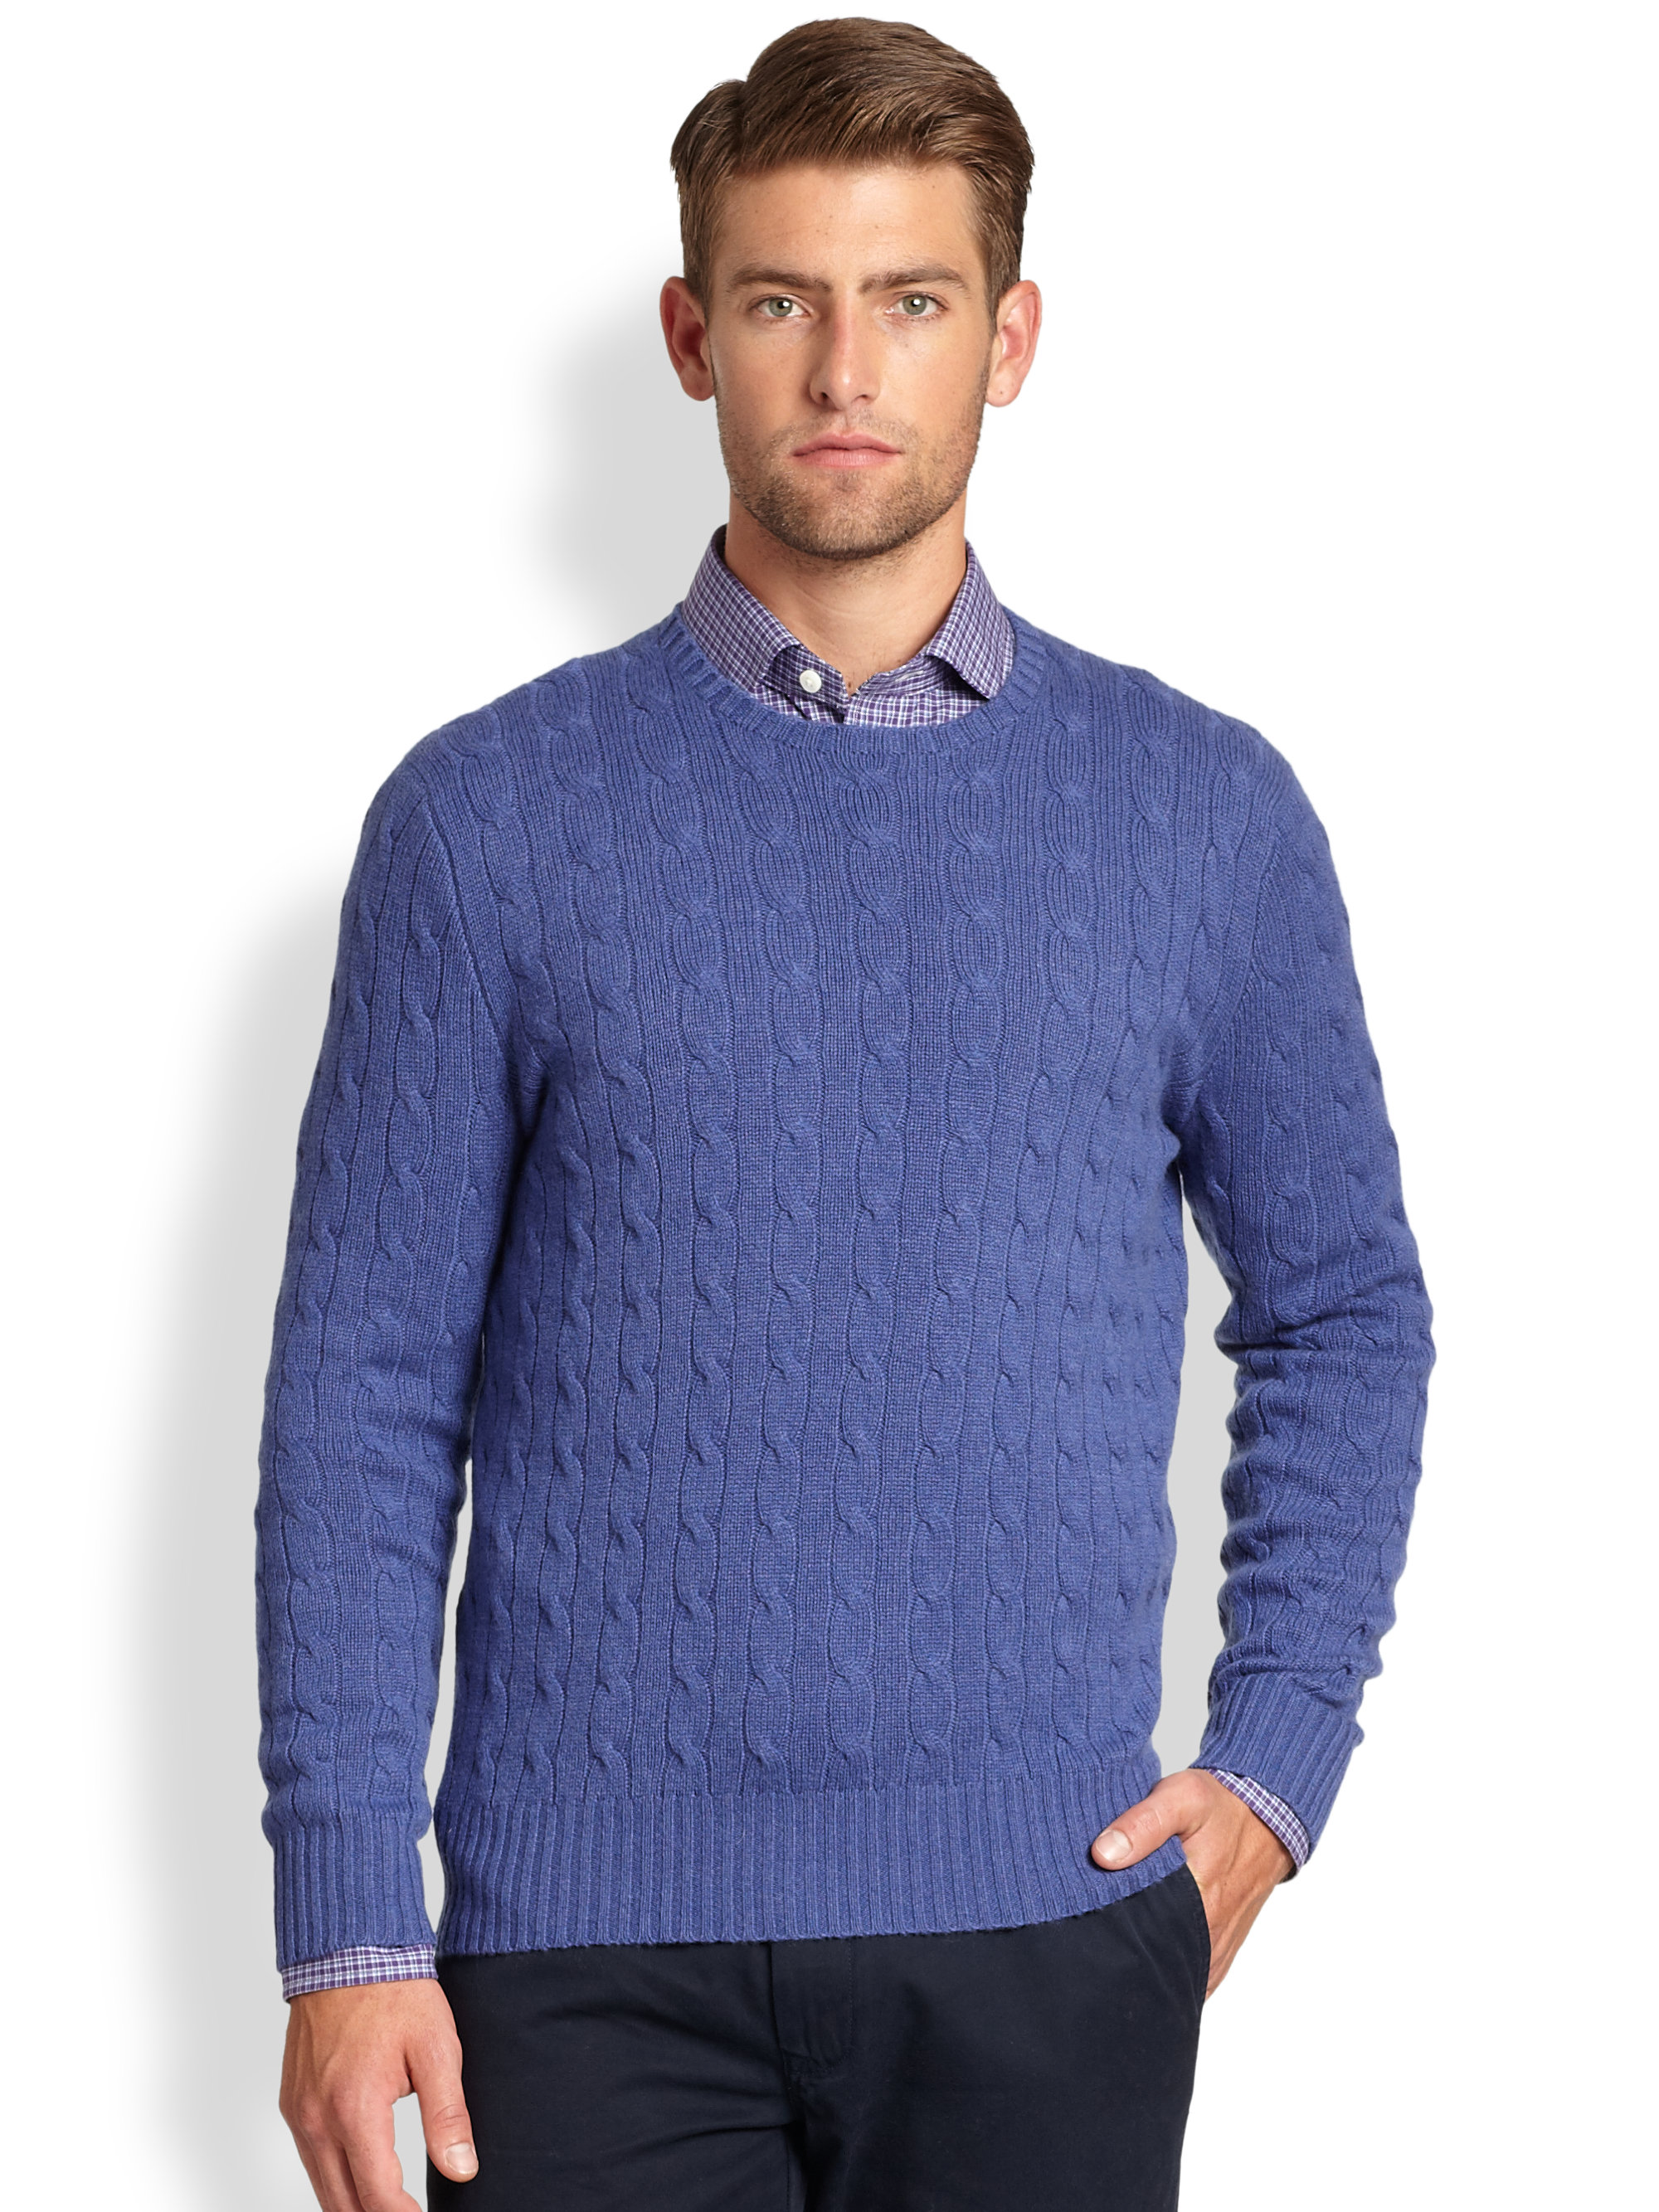 Polo Ralph Lauren Cable Knit Cashmere Crewneck Sweater In